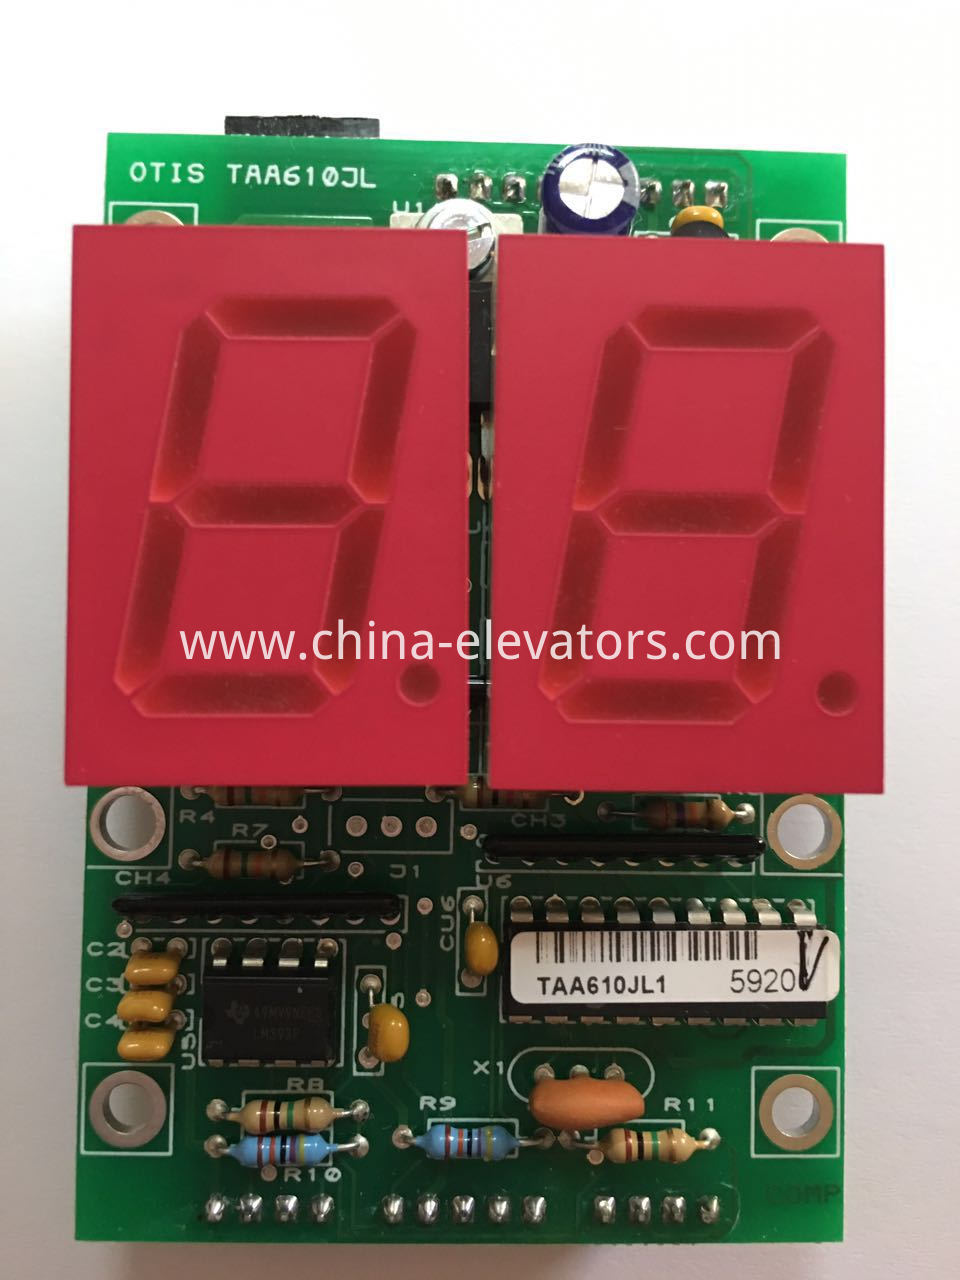 Indicator | Display for OTIS Elevators, TAA610JL1